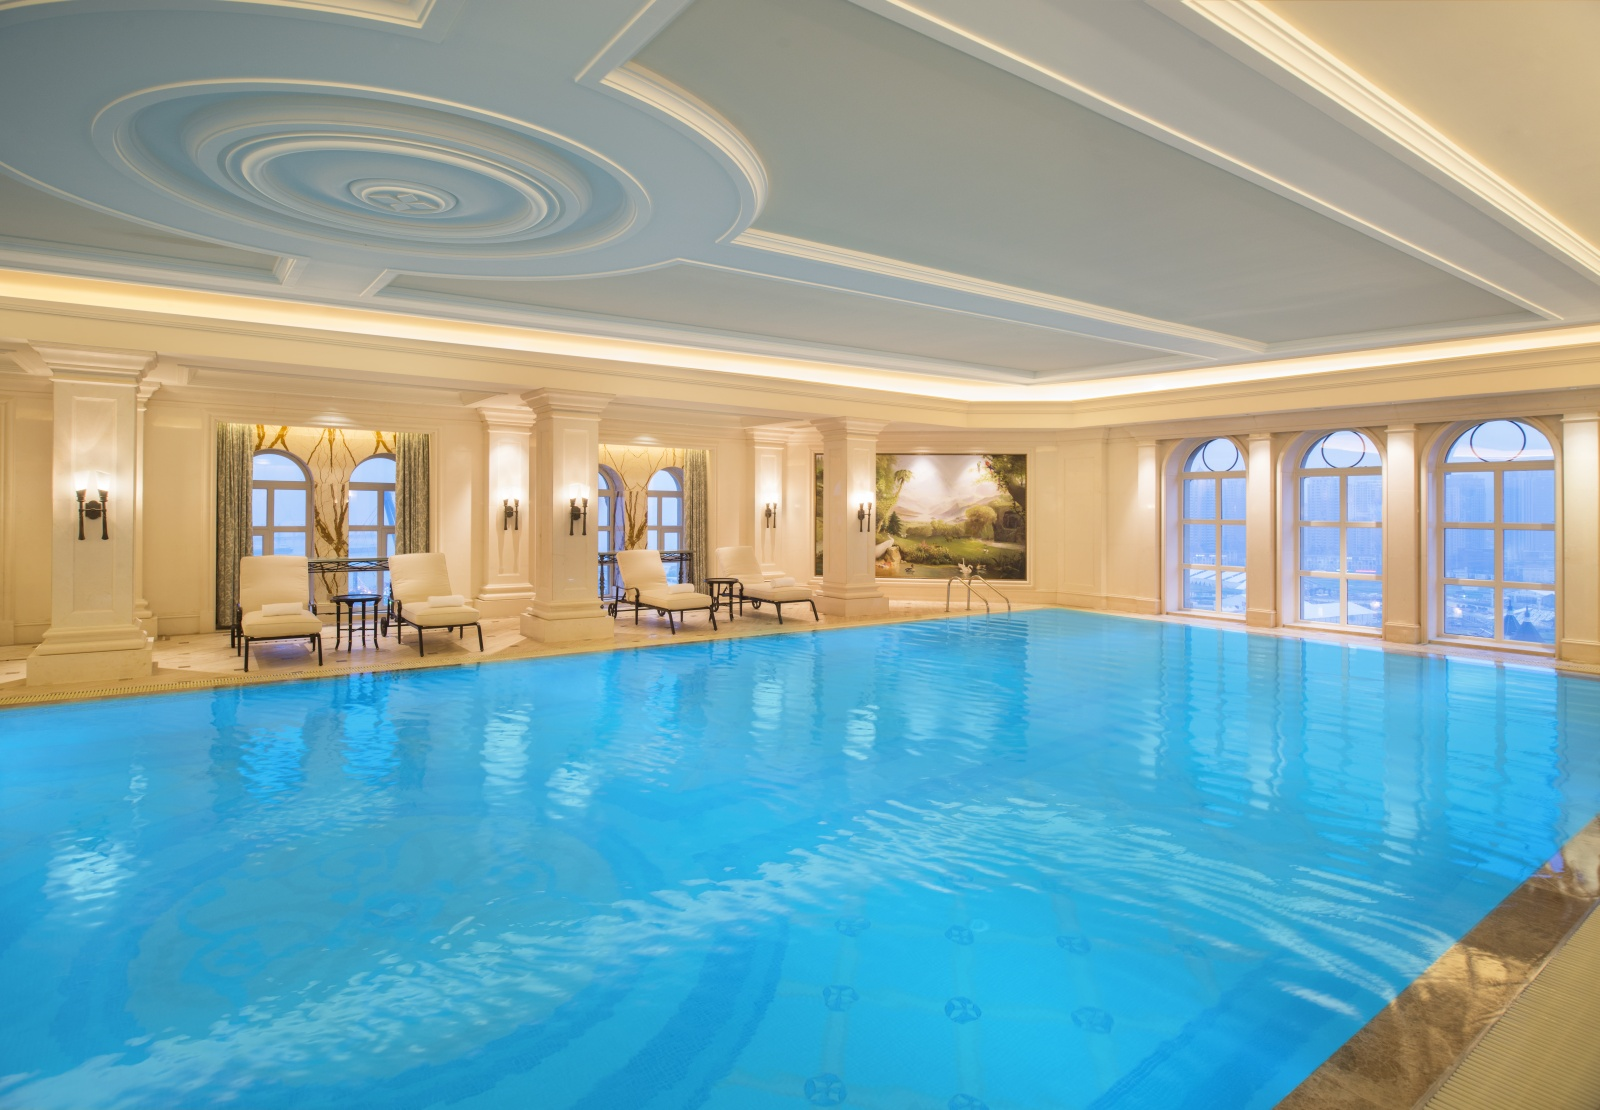 The castle hotel in dalian Hotel in chicago with swimming pool in room